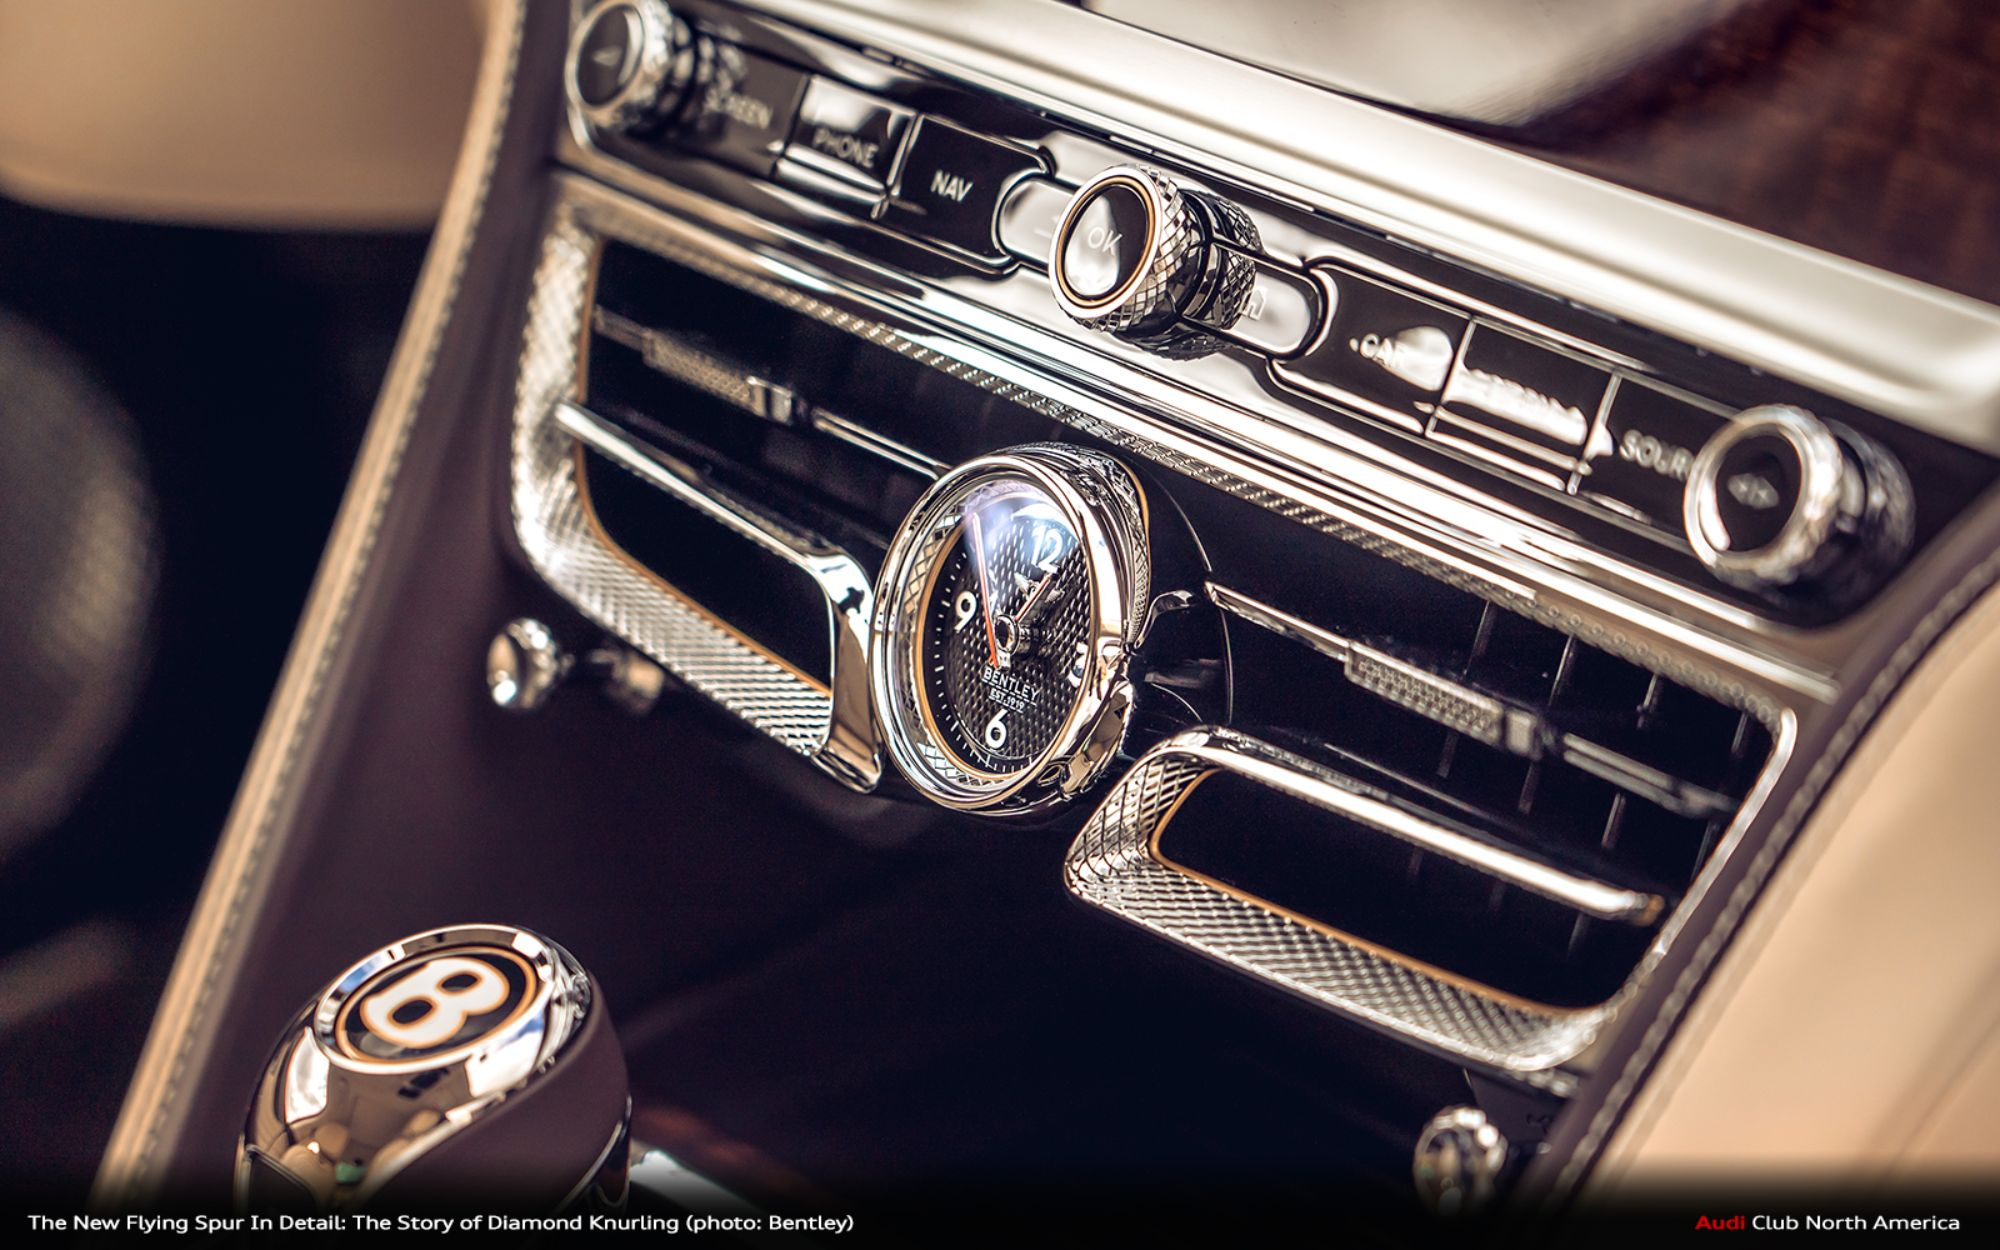 The New Flying Spur In Detail: The Story of Diamond Knurling